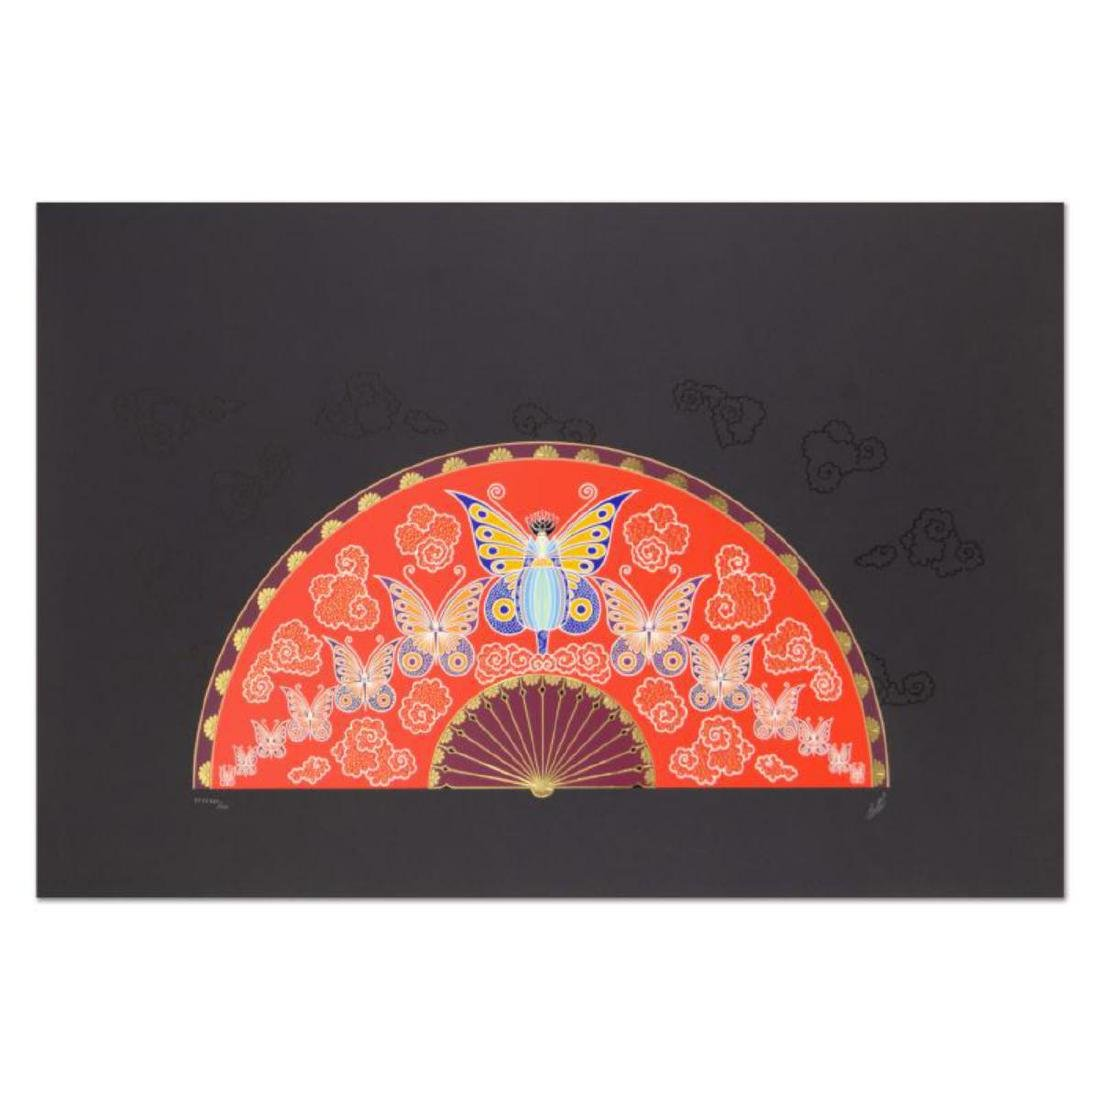 """Erte (1892-1990), """"Madame Butterfly"""" Limited Edition"""